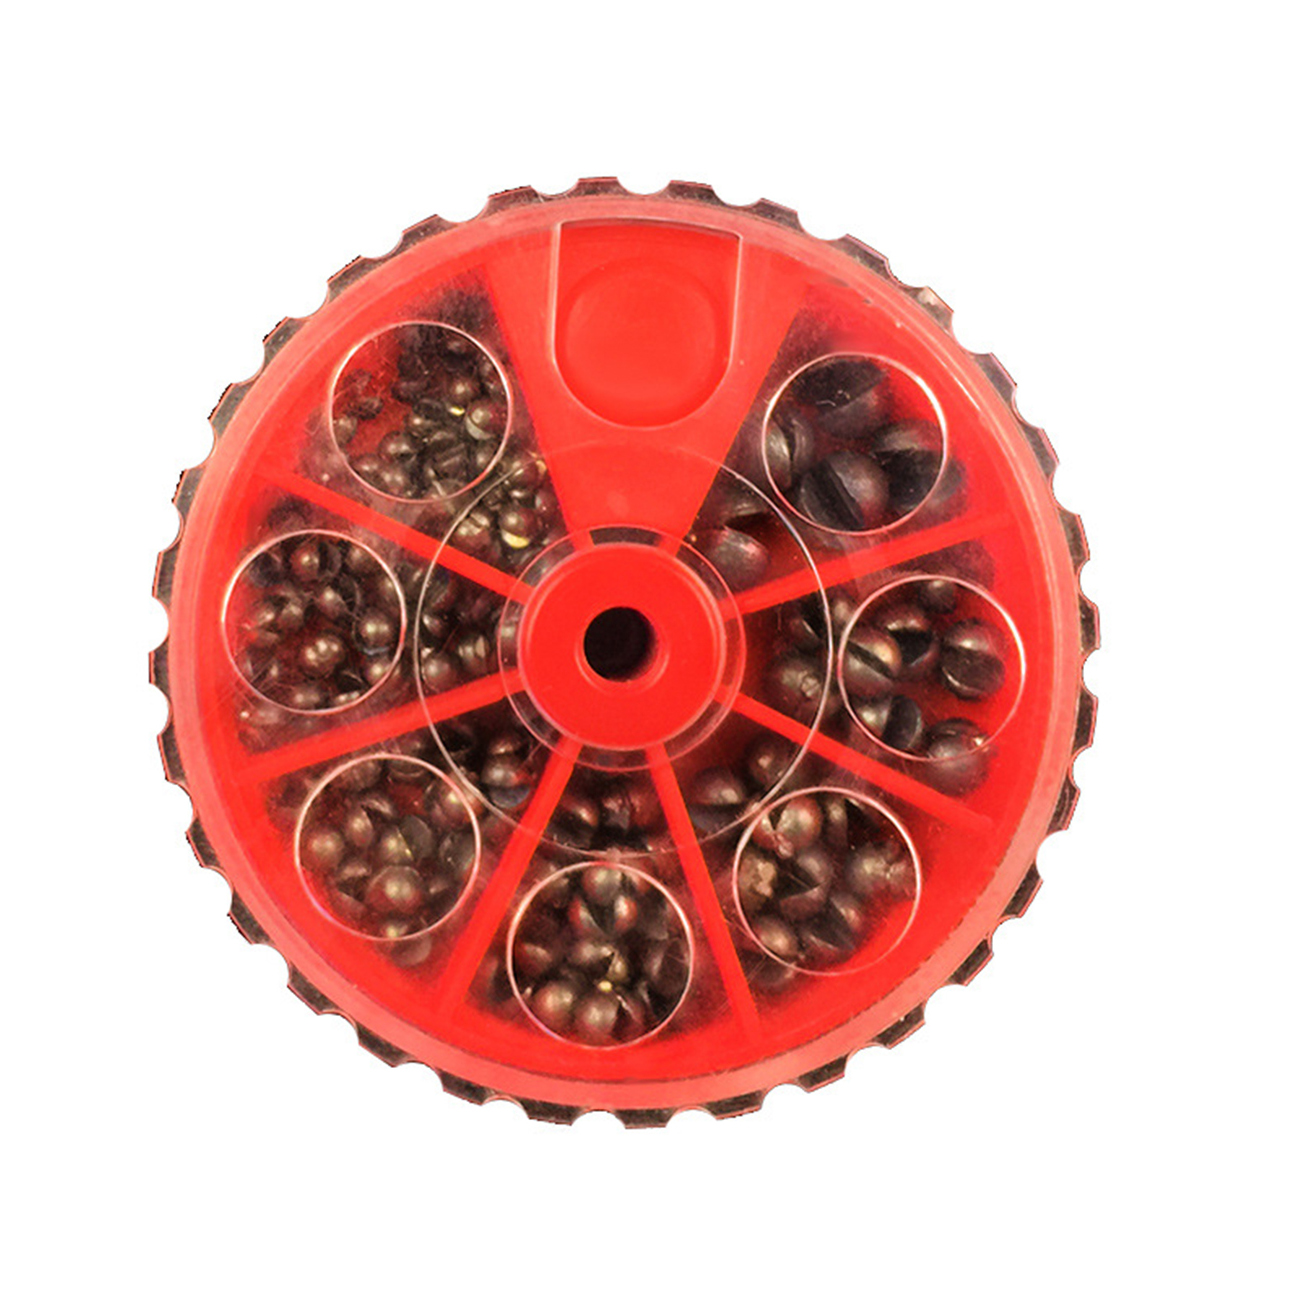 Details about  /100Pcs fishing solid circular split shot lead sinker fishing lure accessoriesSED